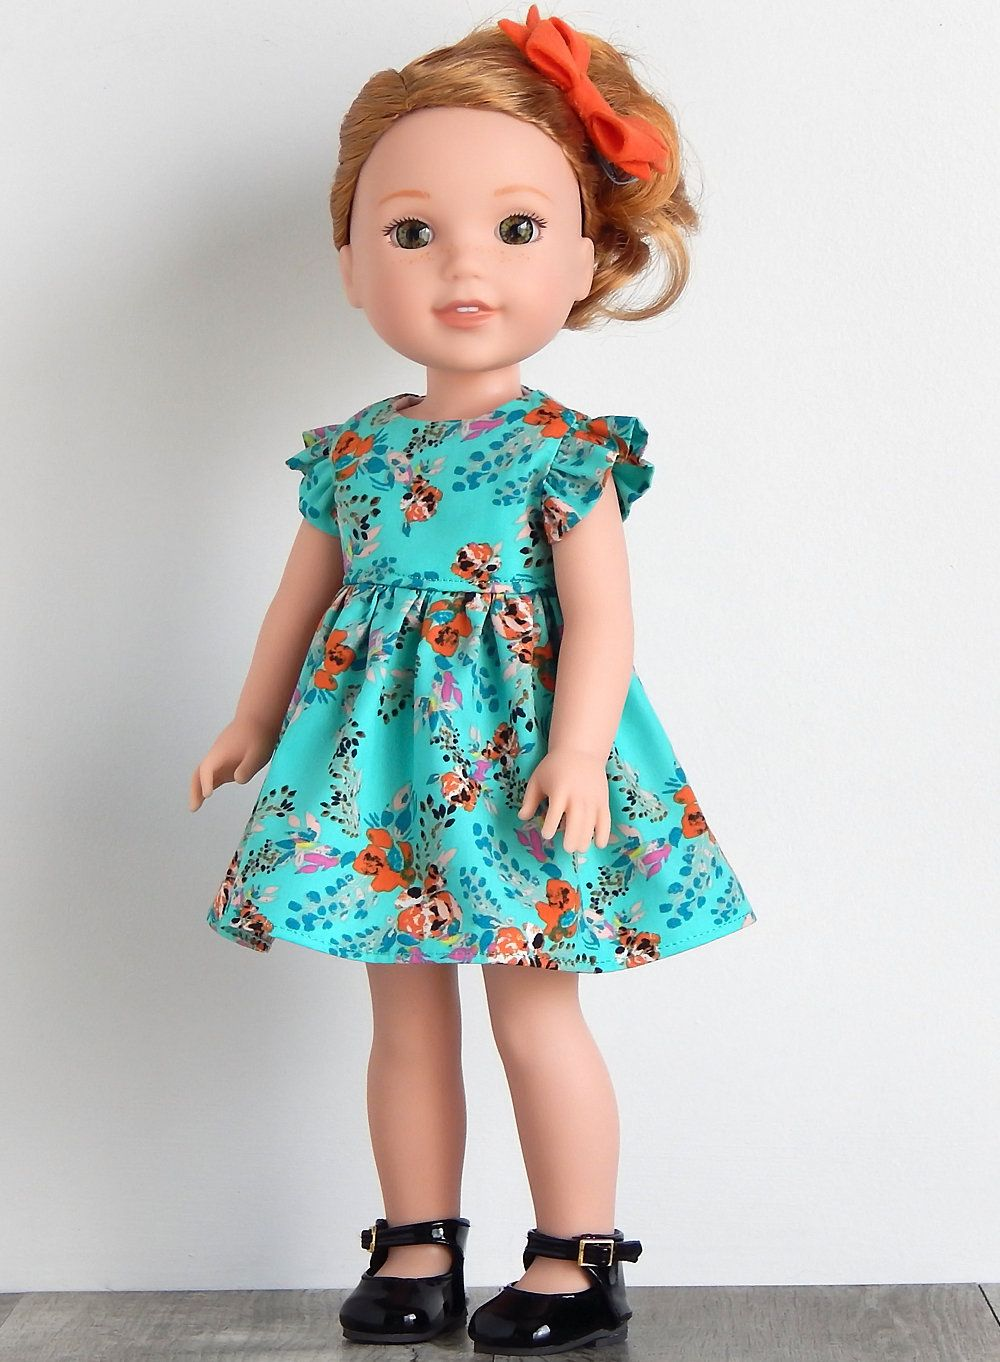 21384d593 Best 12 14.5 inch Doll Clothes-Green Floral Dress fits like Wellie ...